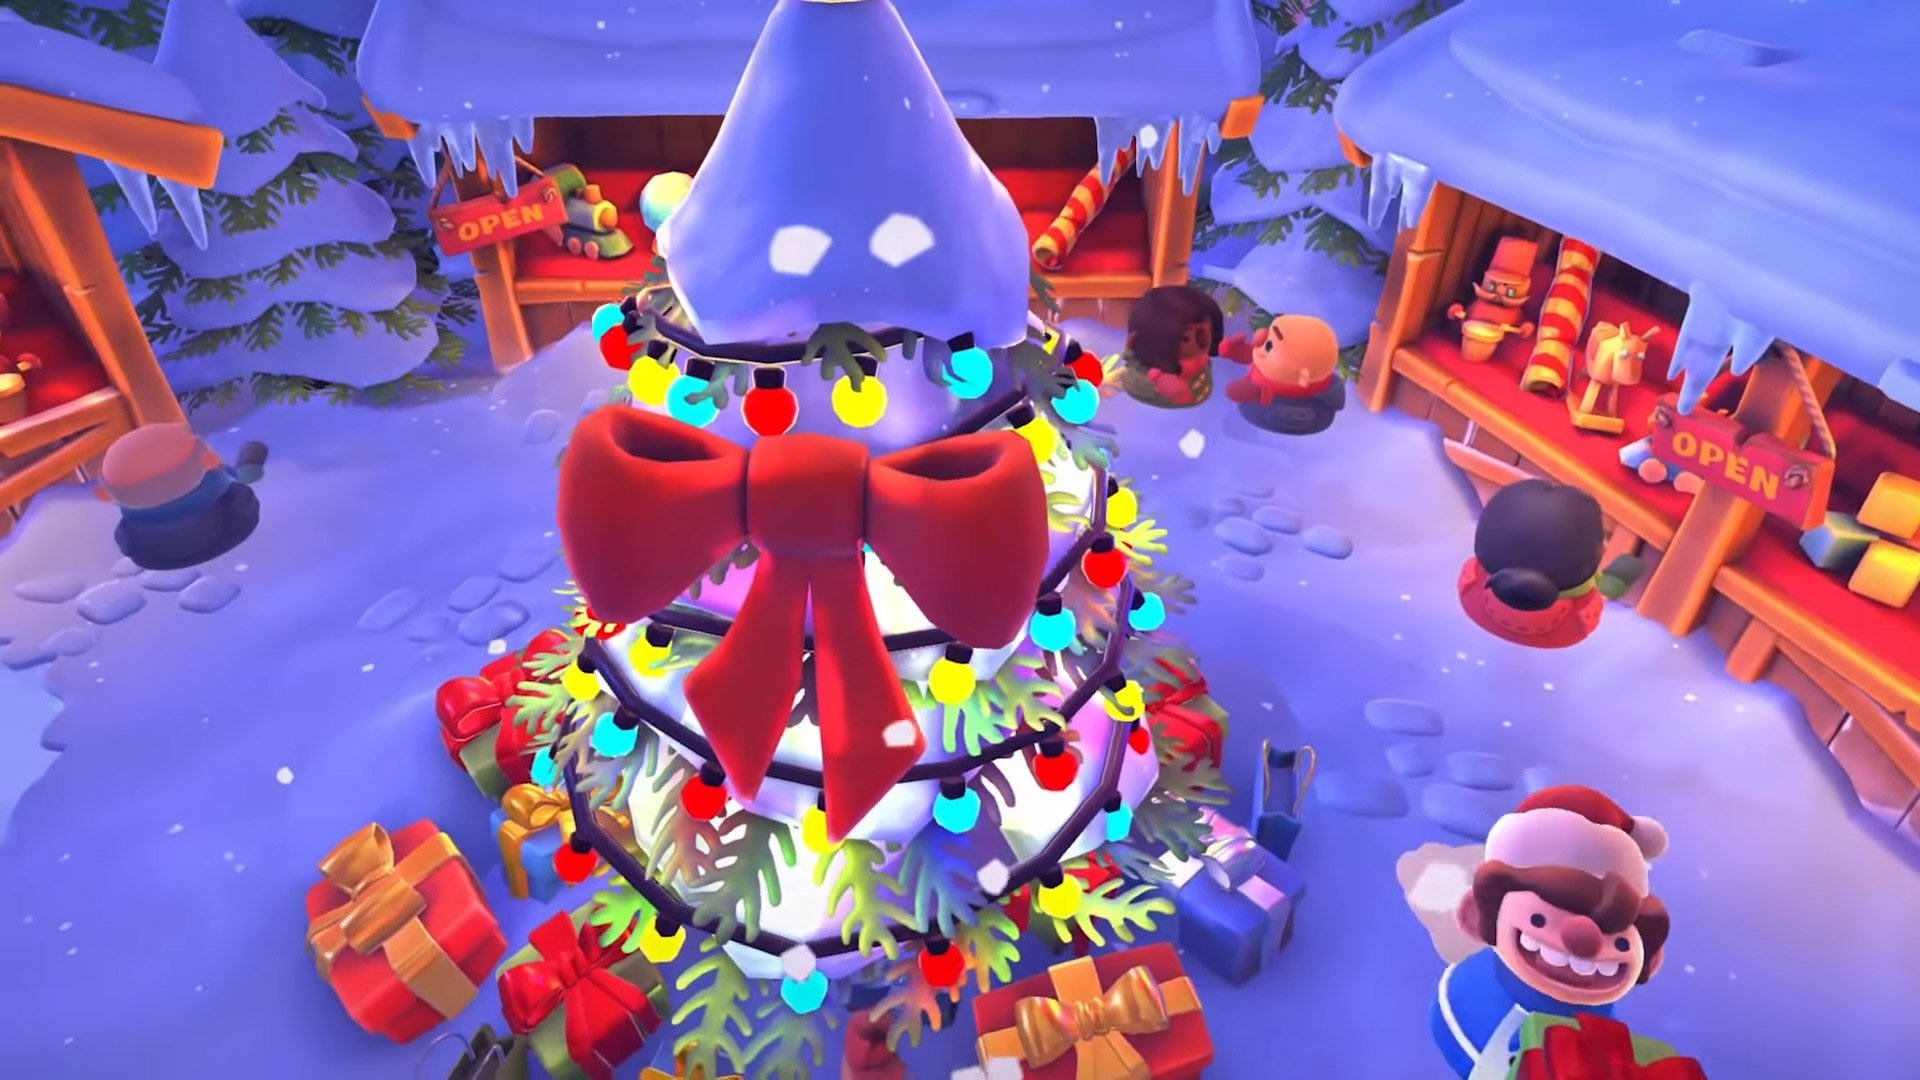 Overcooked 2 has a Winter Wonderland update for the holidays screenshot